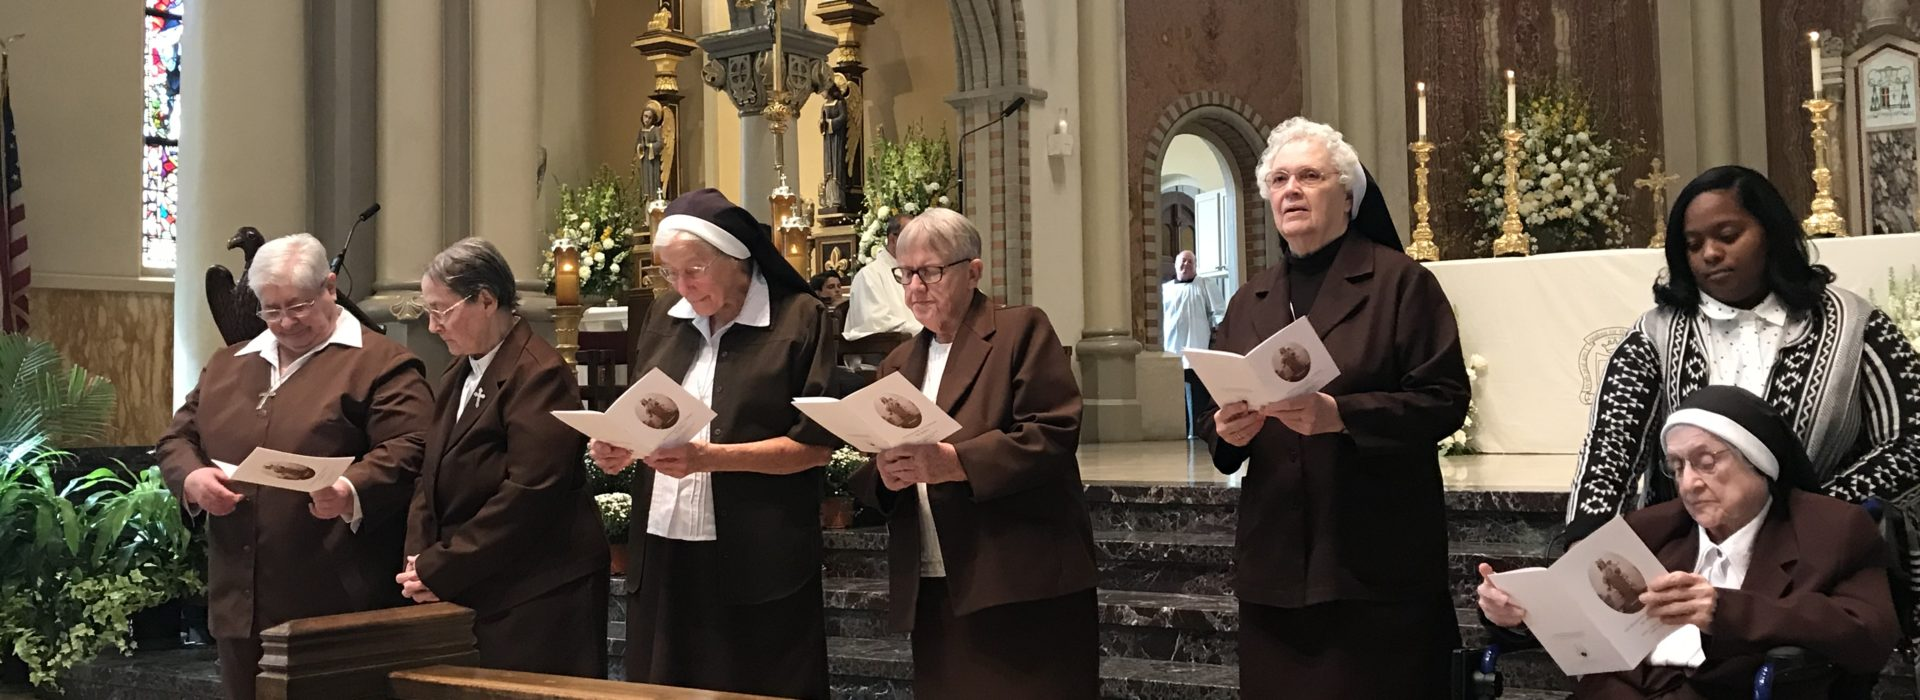 Sisters Of Mount Carmel – We are an active community and our